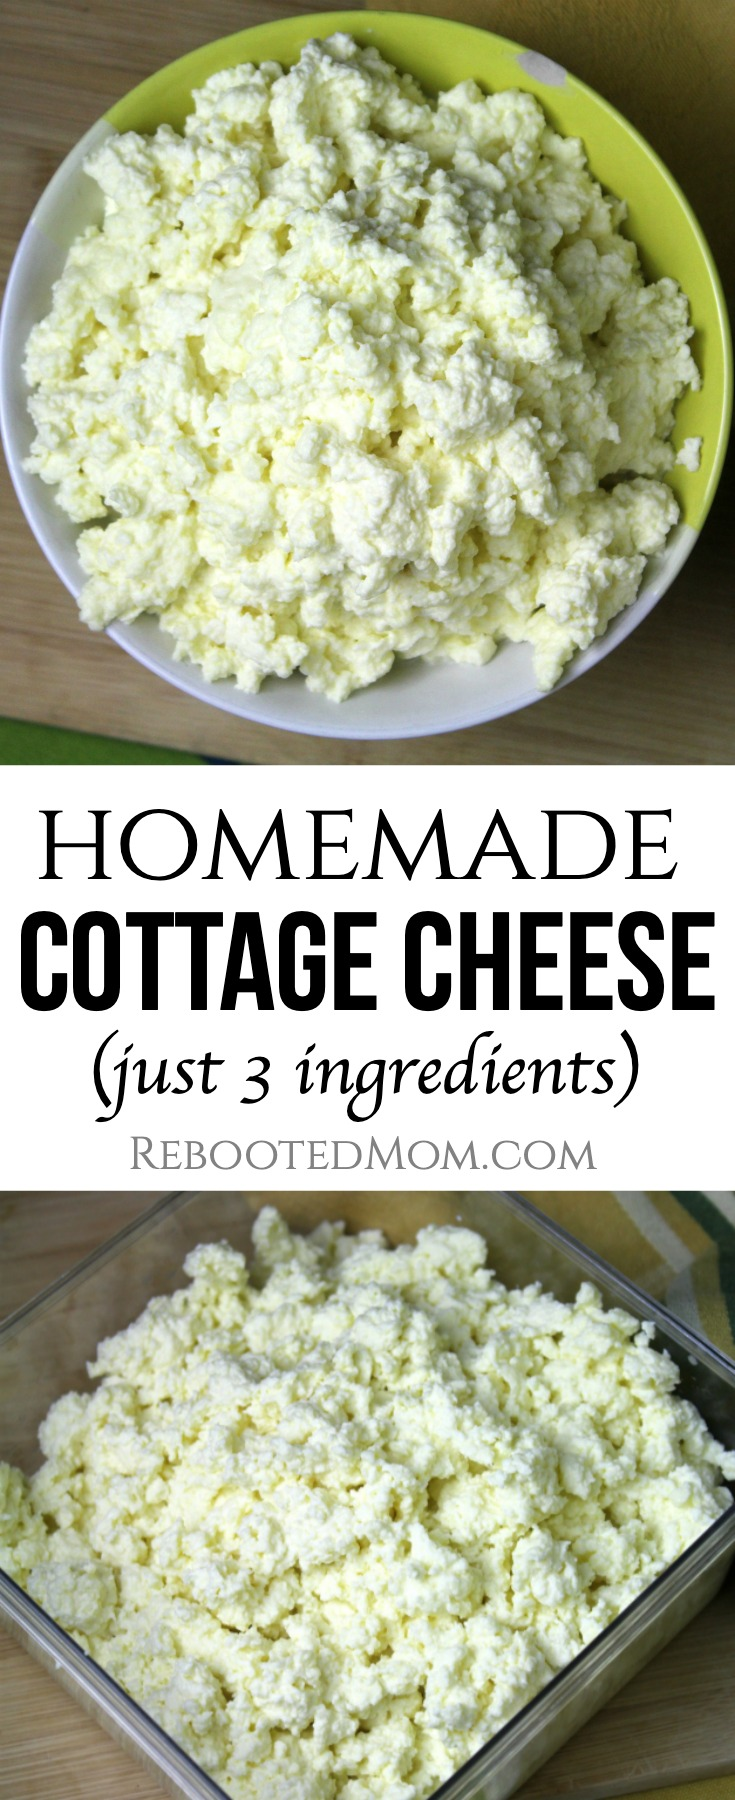 An Absolutely Delicious Recipe For Homemade Cottage Cheese That S Simple To Make At Home In 2020 Homemade Cottage Cheese Cottage Cheese Recipes Cheese Recipes Homemade